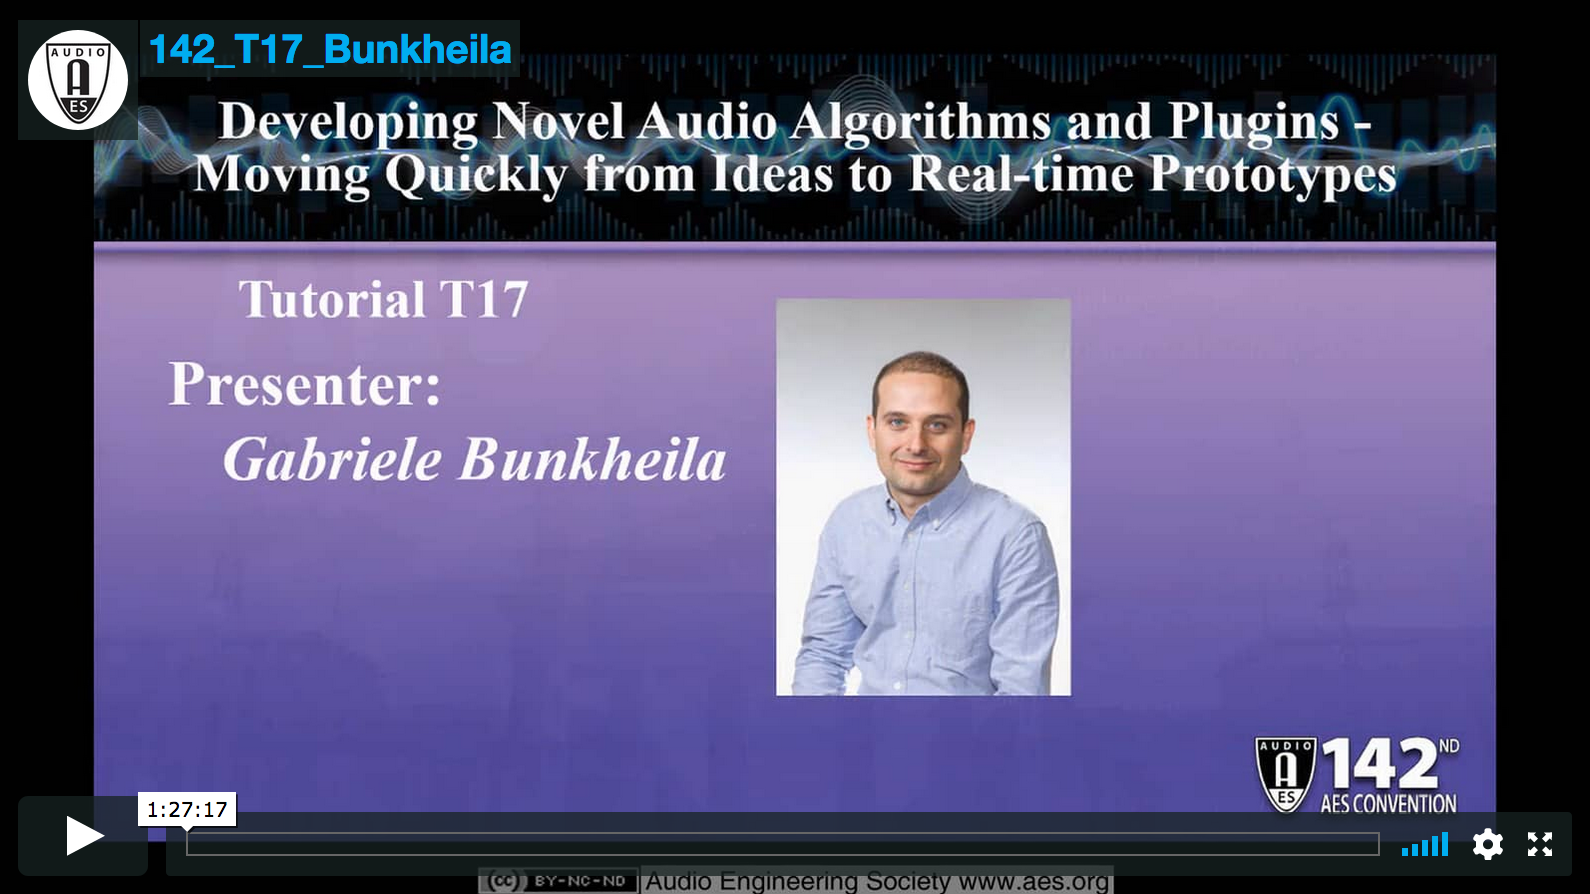 Gabriele Bunkheila: Developing Novel Audio Algorithms and Plugins - Moving Quickly from Ideas to Real-time Prototypes